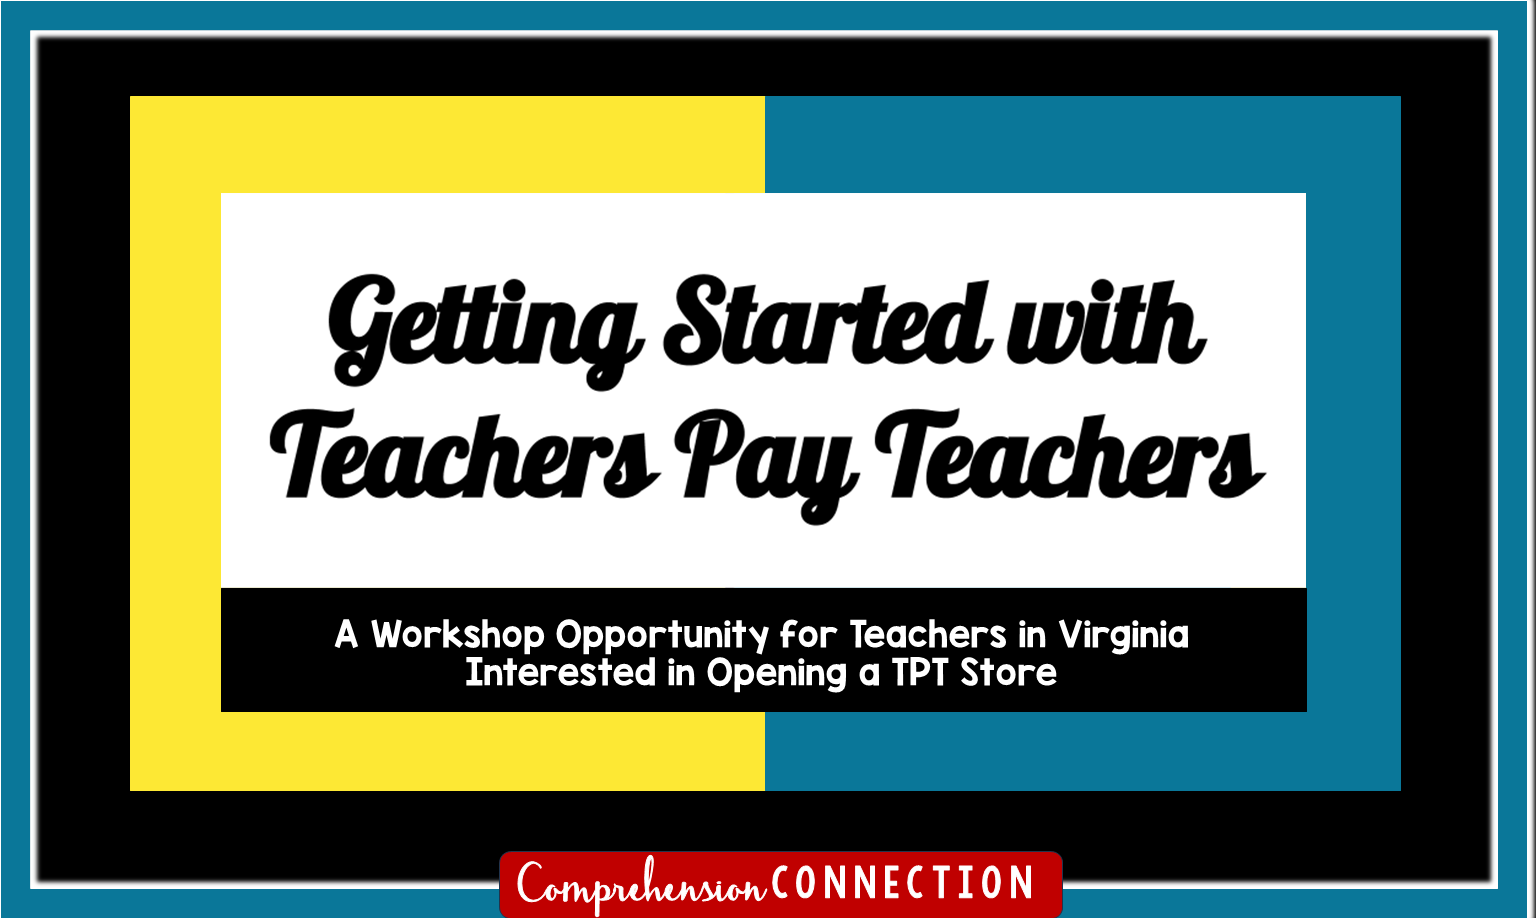 If you've wondered how to get started with Teachers Pay Teachers and you live in Virginia, you might consider this Getting Started with Teachers Pay Teachers Workshop designed to walk you through the process. Check out this post for the details.